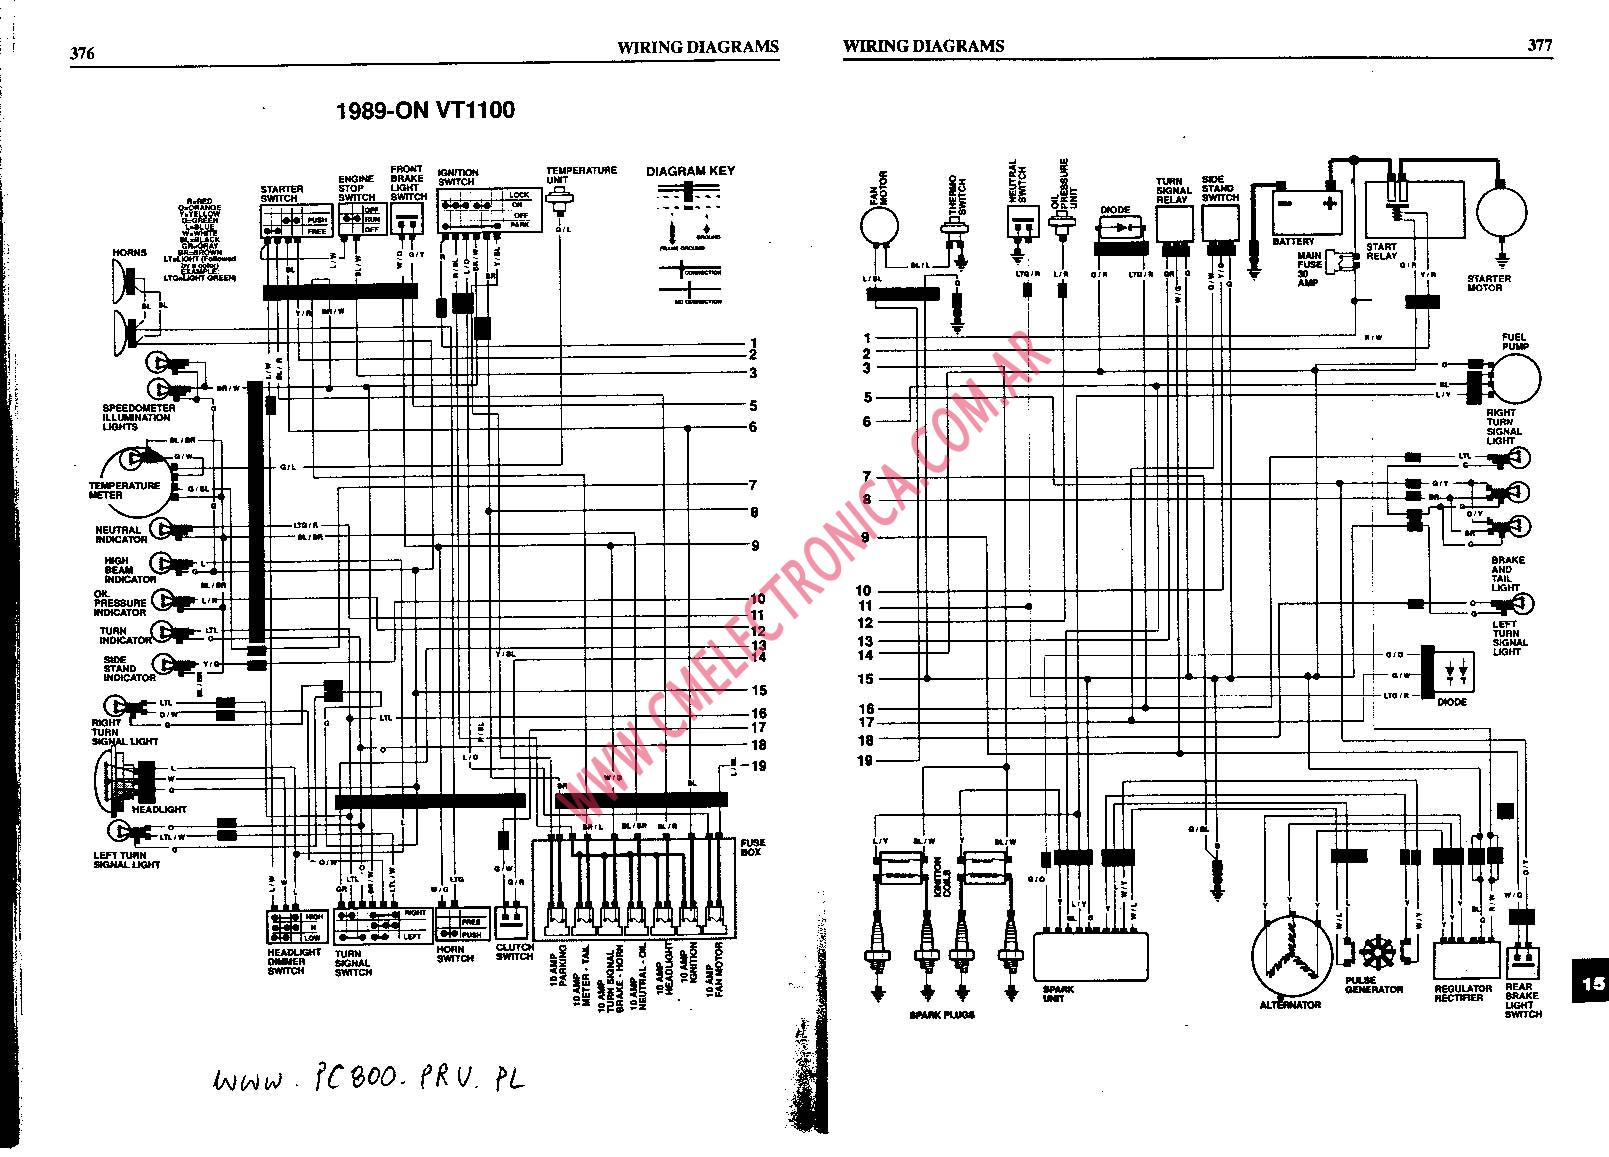 Honda 1100 Ace Wiring Diagram And Schematics 1996 Polaris Sportsman 500 Stator Shadow Get Free Image About Rh Hashtravel Co 96